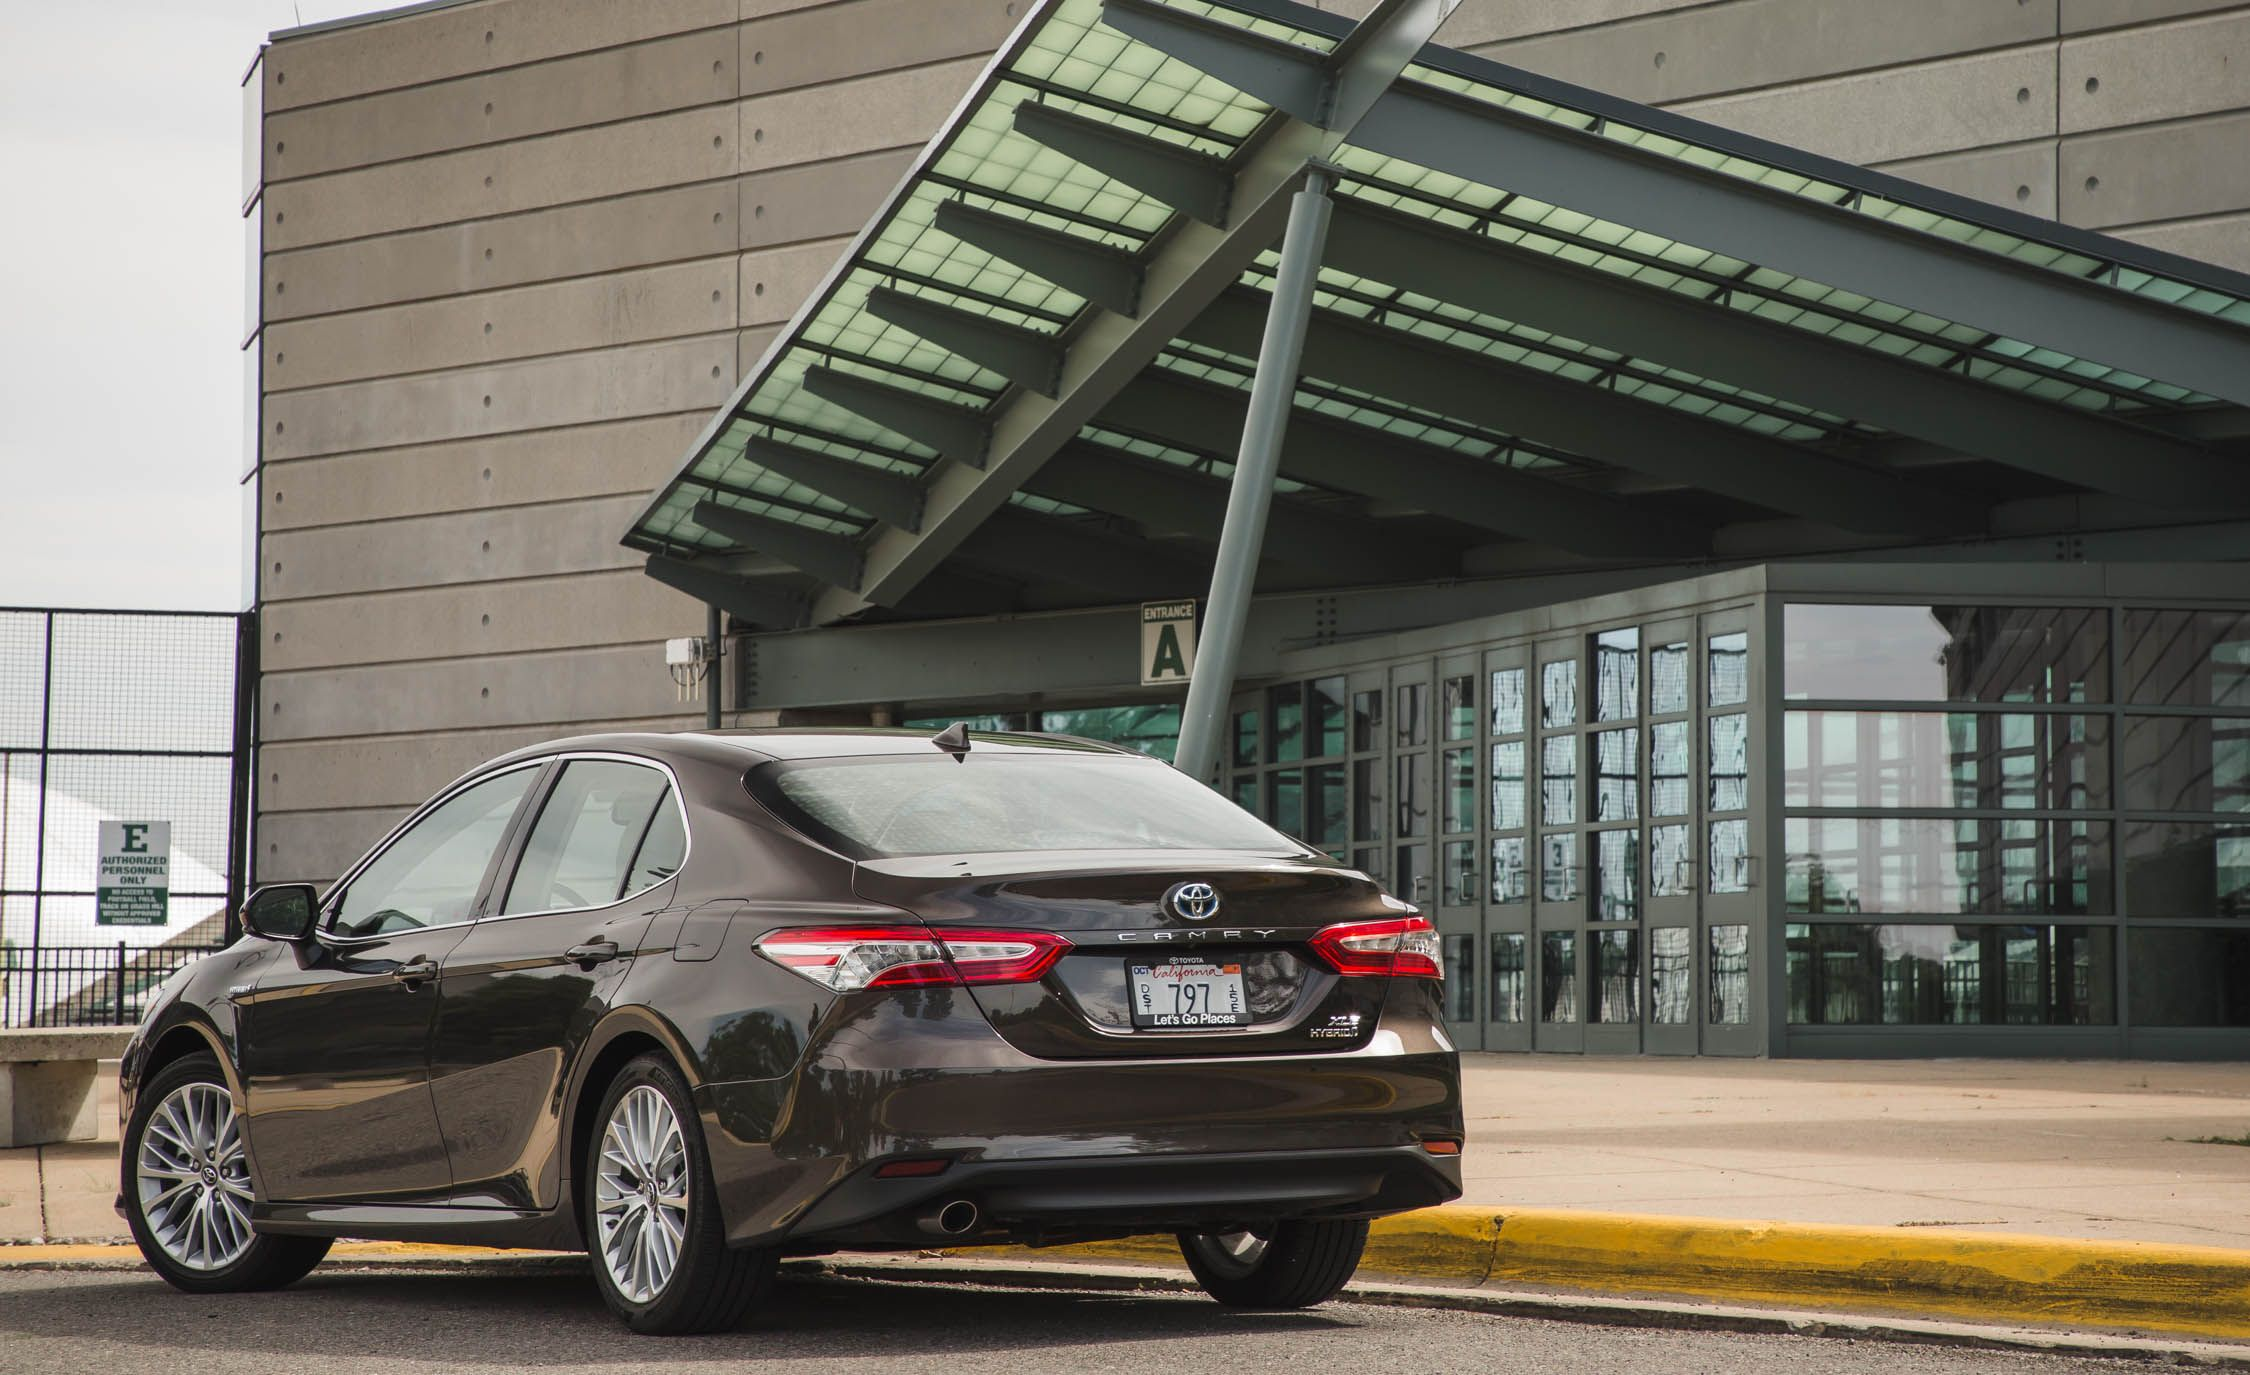 2018 Toyota Camry Cargo Space and Storage Review